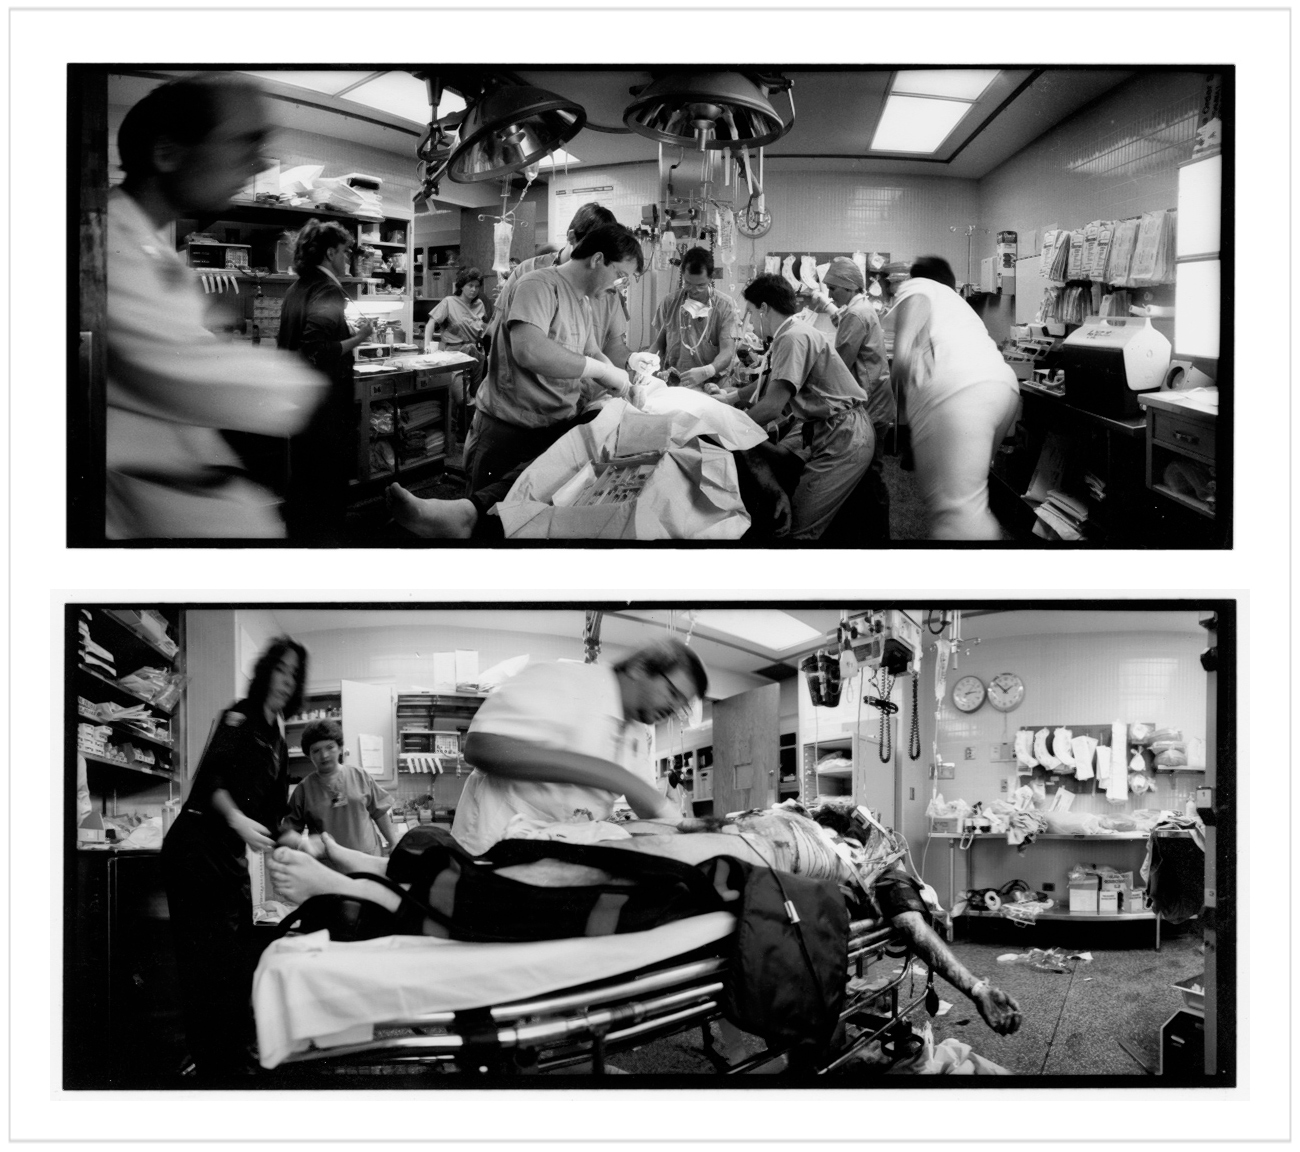 Death In the ER   ~  A Day in the Life of an Urban Hospital  book (embiggenable) • Widelux 1500 (medium format)